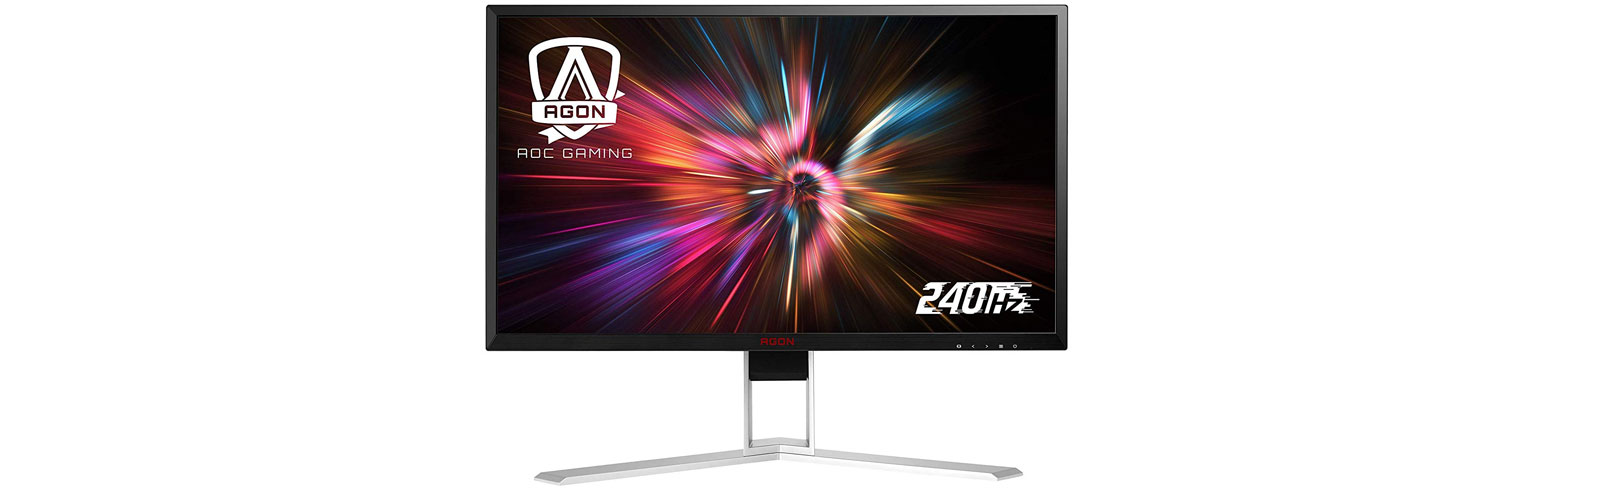 AOC AGON AG251FZ2 and AG271FZ2 with 240Hz refresh rate go on pre-sale on Amazon